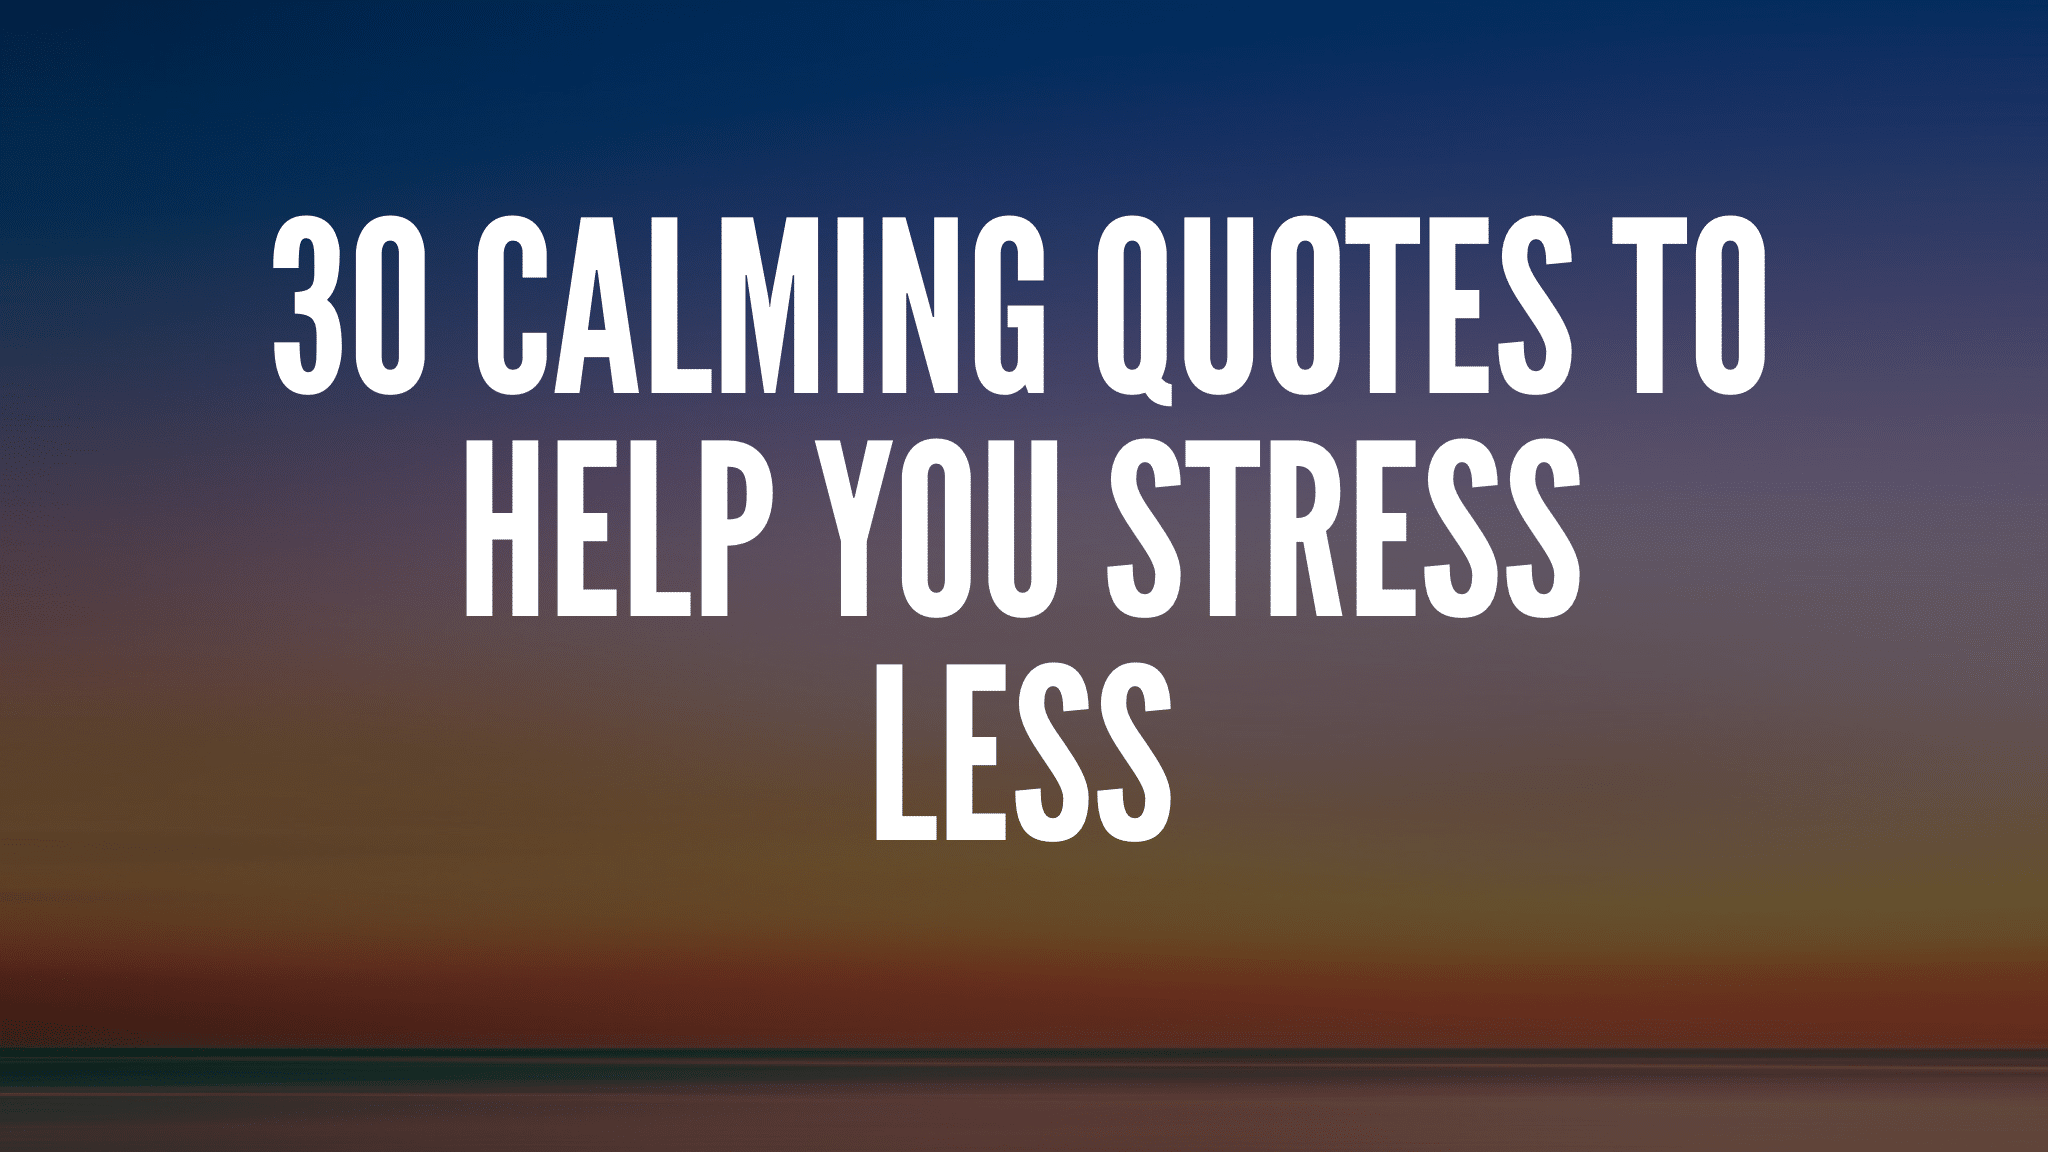 30 Calming Quotes To Help You Stress Less